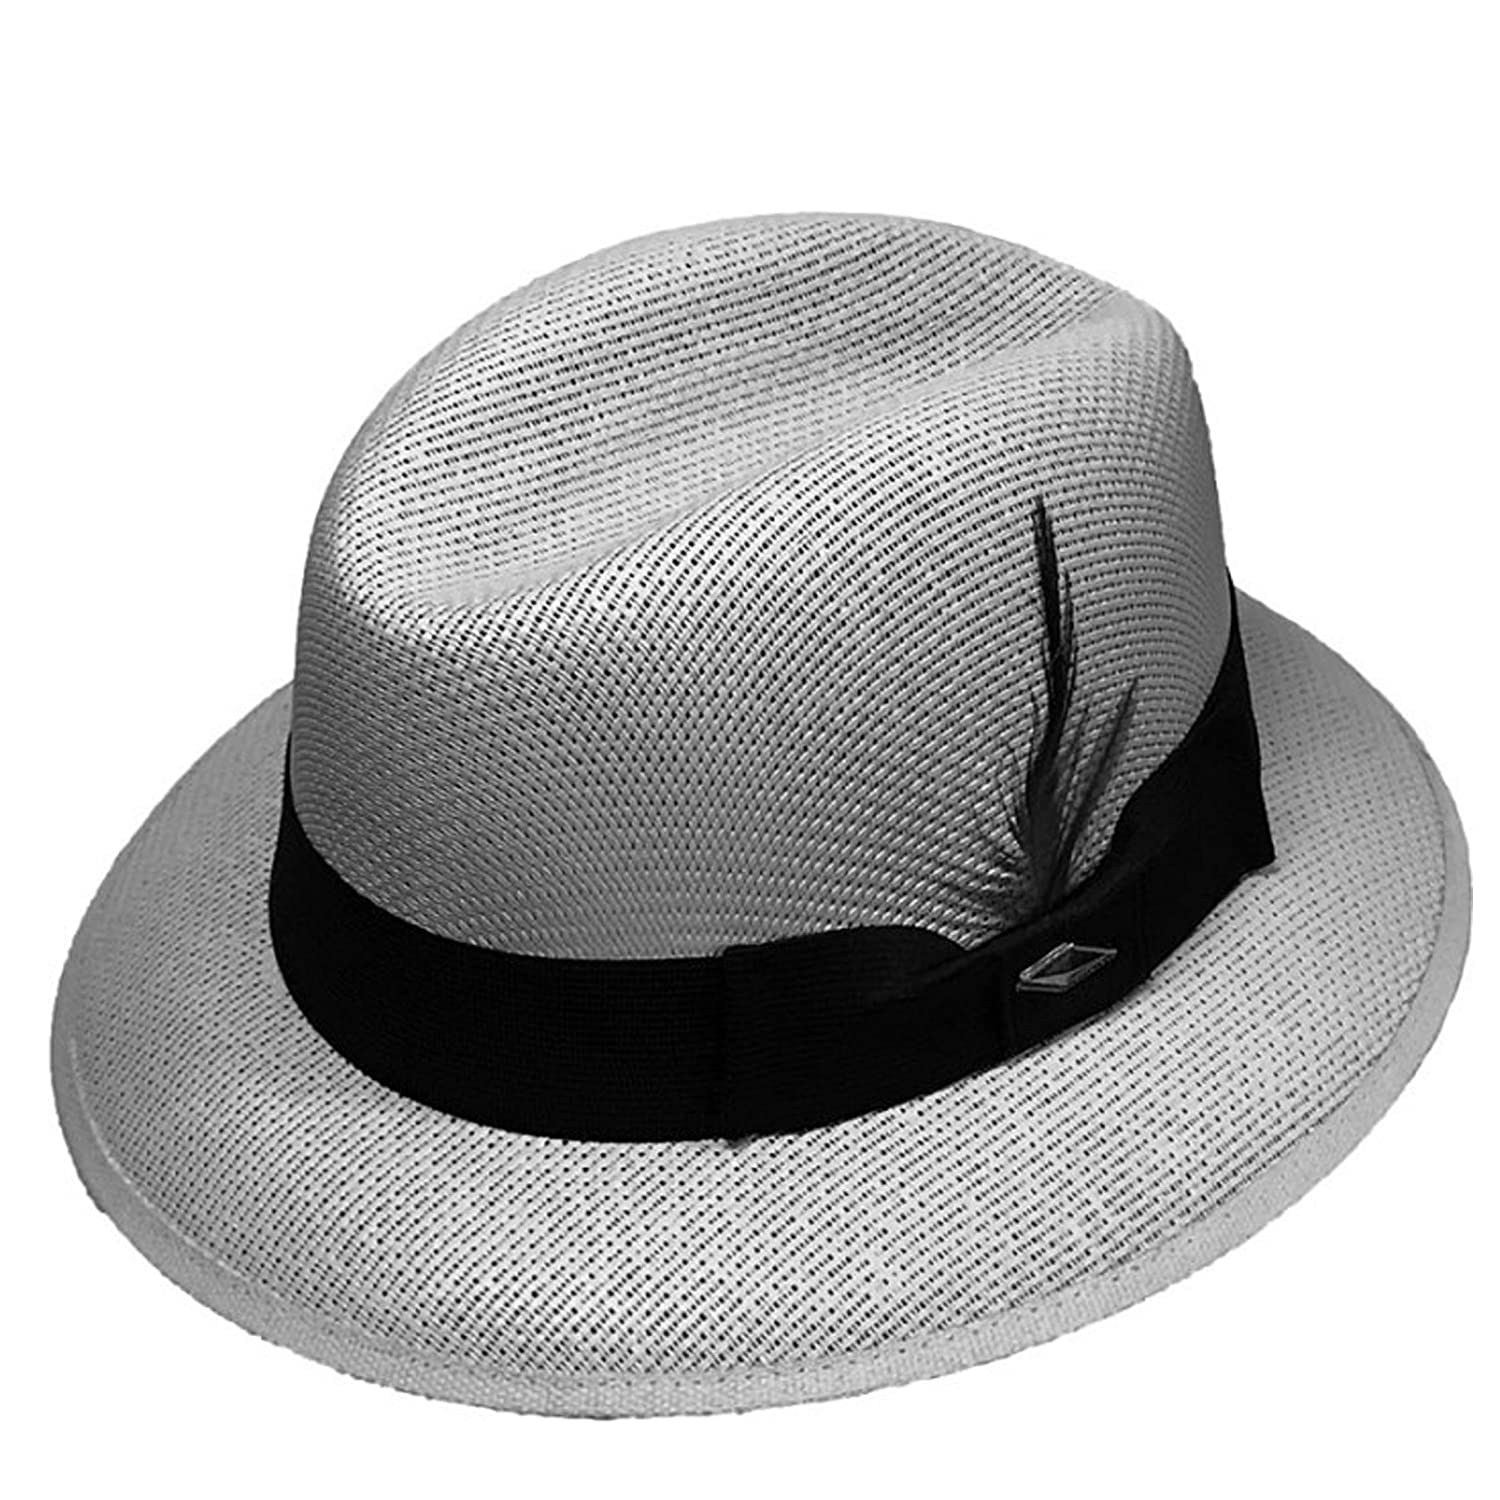 Gray Pachuco Lowrider Fedora Style Brim Hat Grey at Amazon Men s Clothing  store  f1d7c19d71c